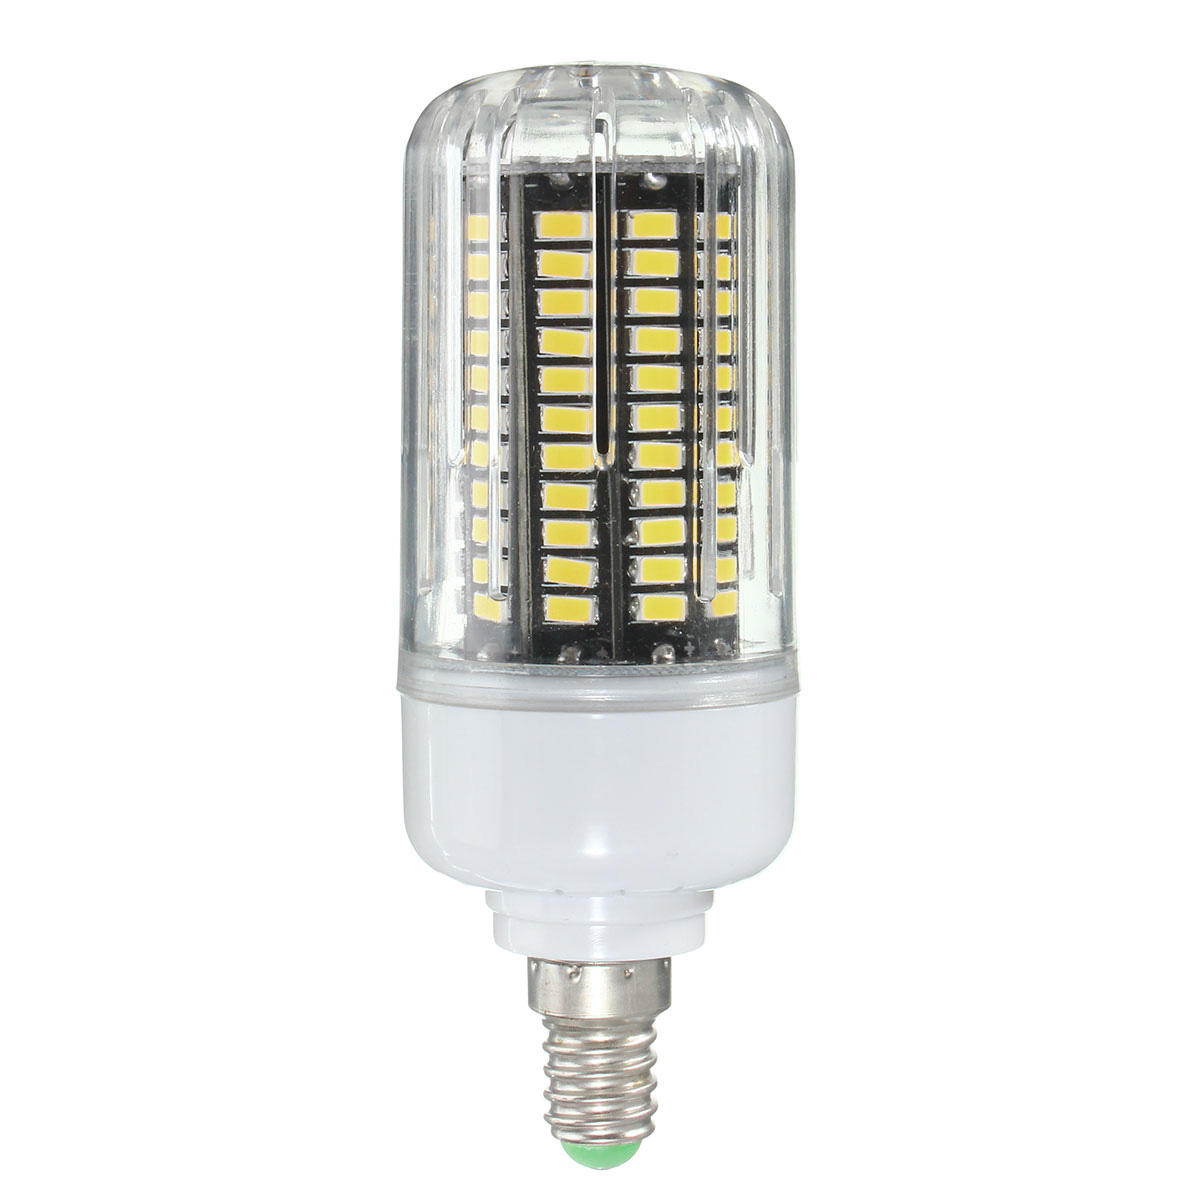 E27 E14 E12E E17 B22 15W 130 SMD 5736 LED Pure White Warm White Cover Corn Bulb AC85 265V - 7